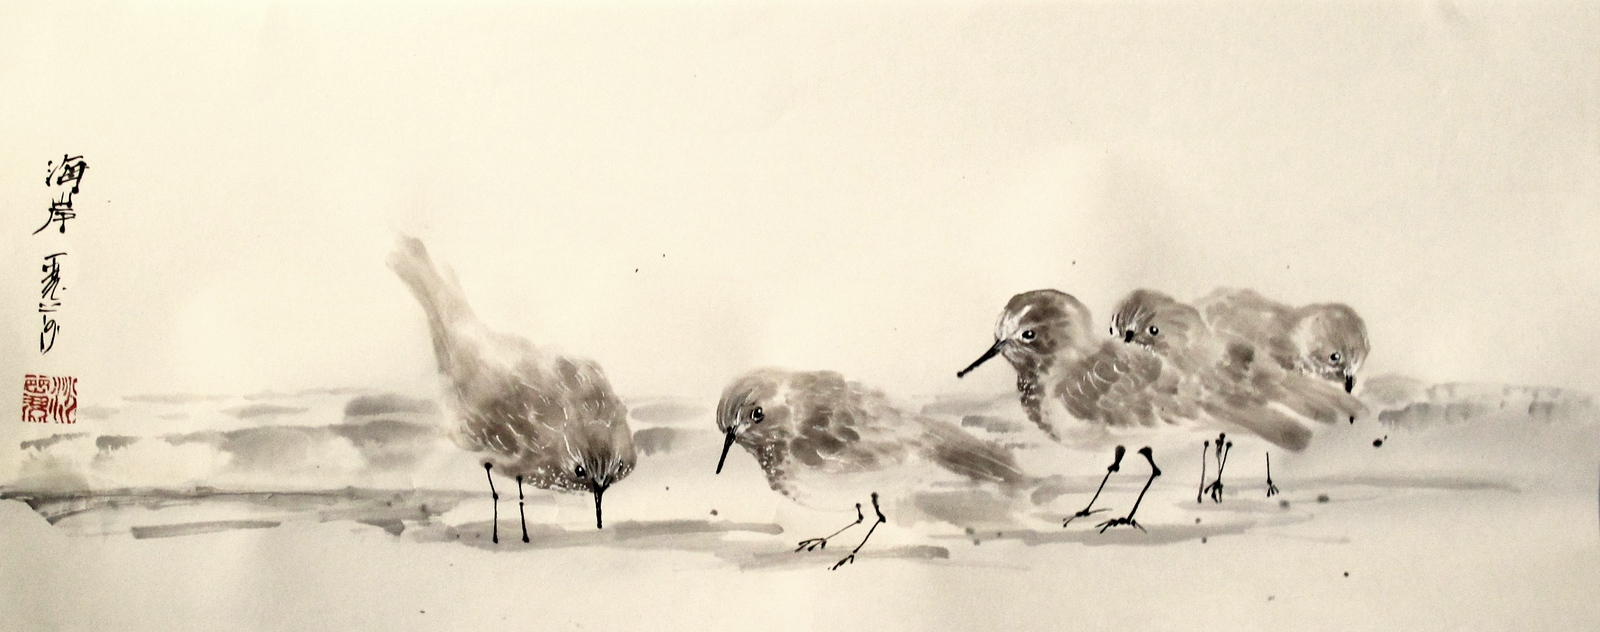 Shoreline (Sandpipers)